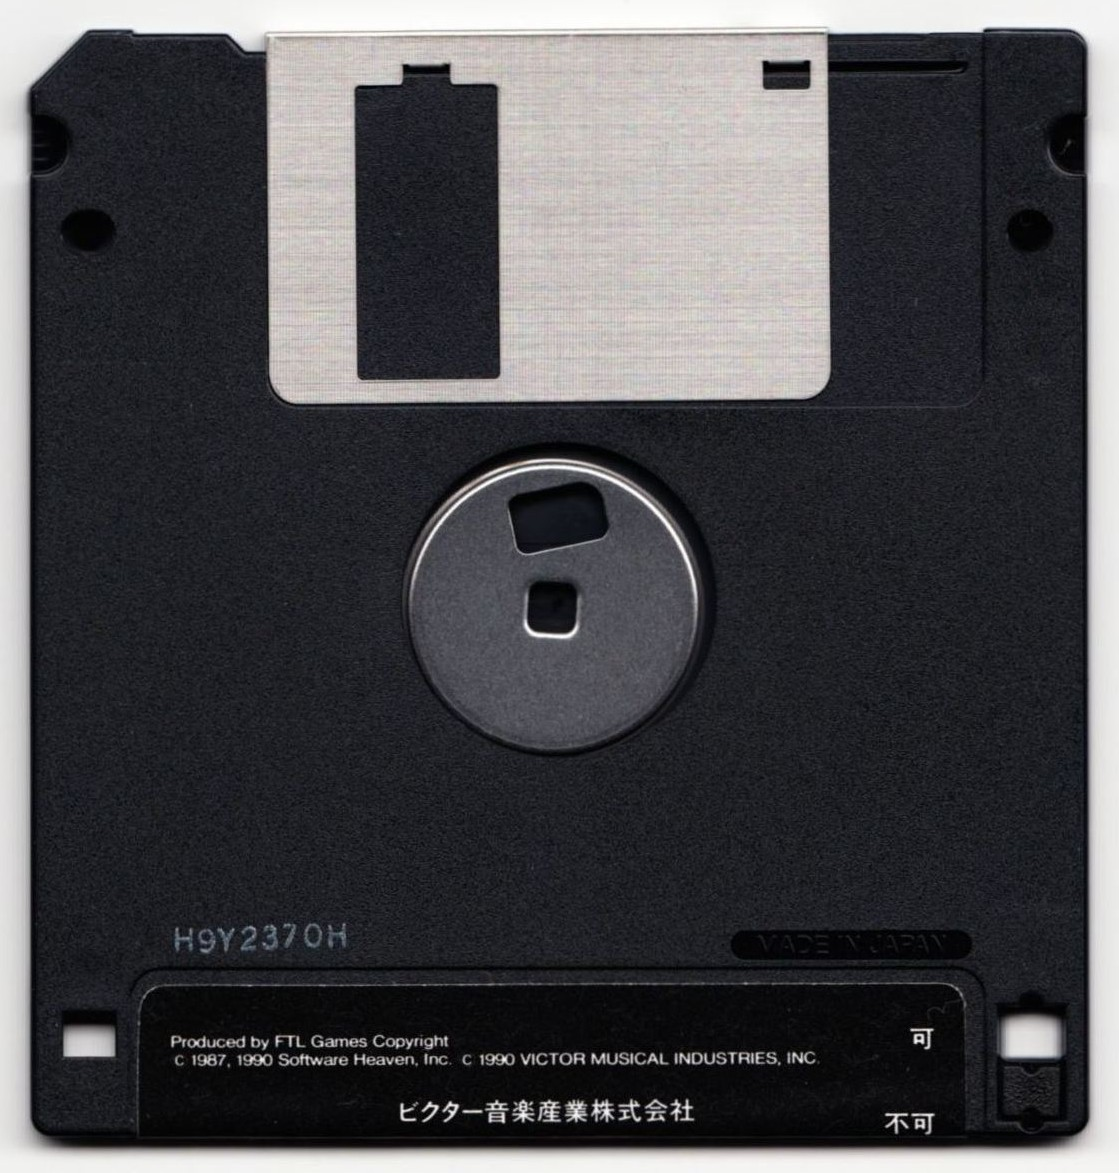 Game - Dungeon Master - JP - PC-9801 - 3.5-inch - Game Disk - Back - Scan